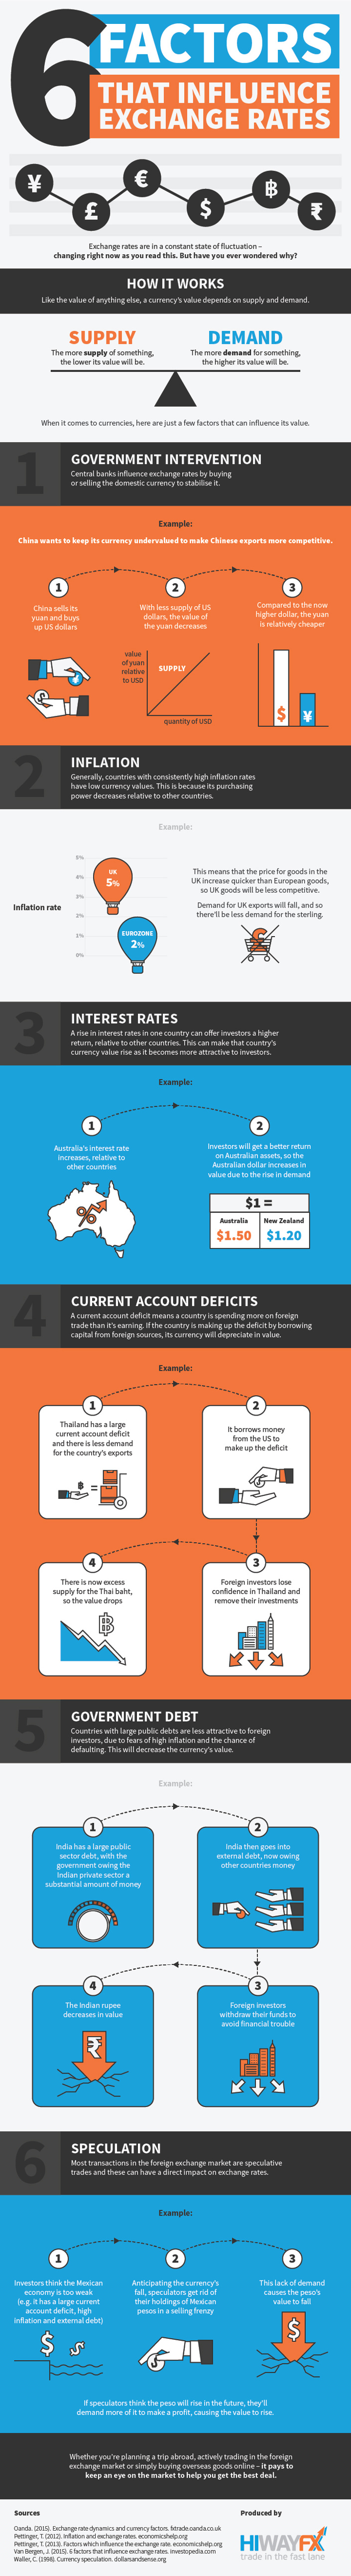 Currency Rate Volatility: 6 Key Influencing Factors - Infographic